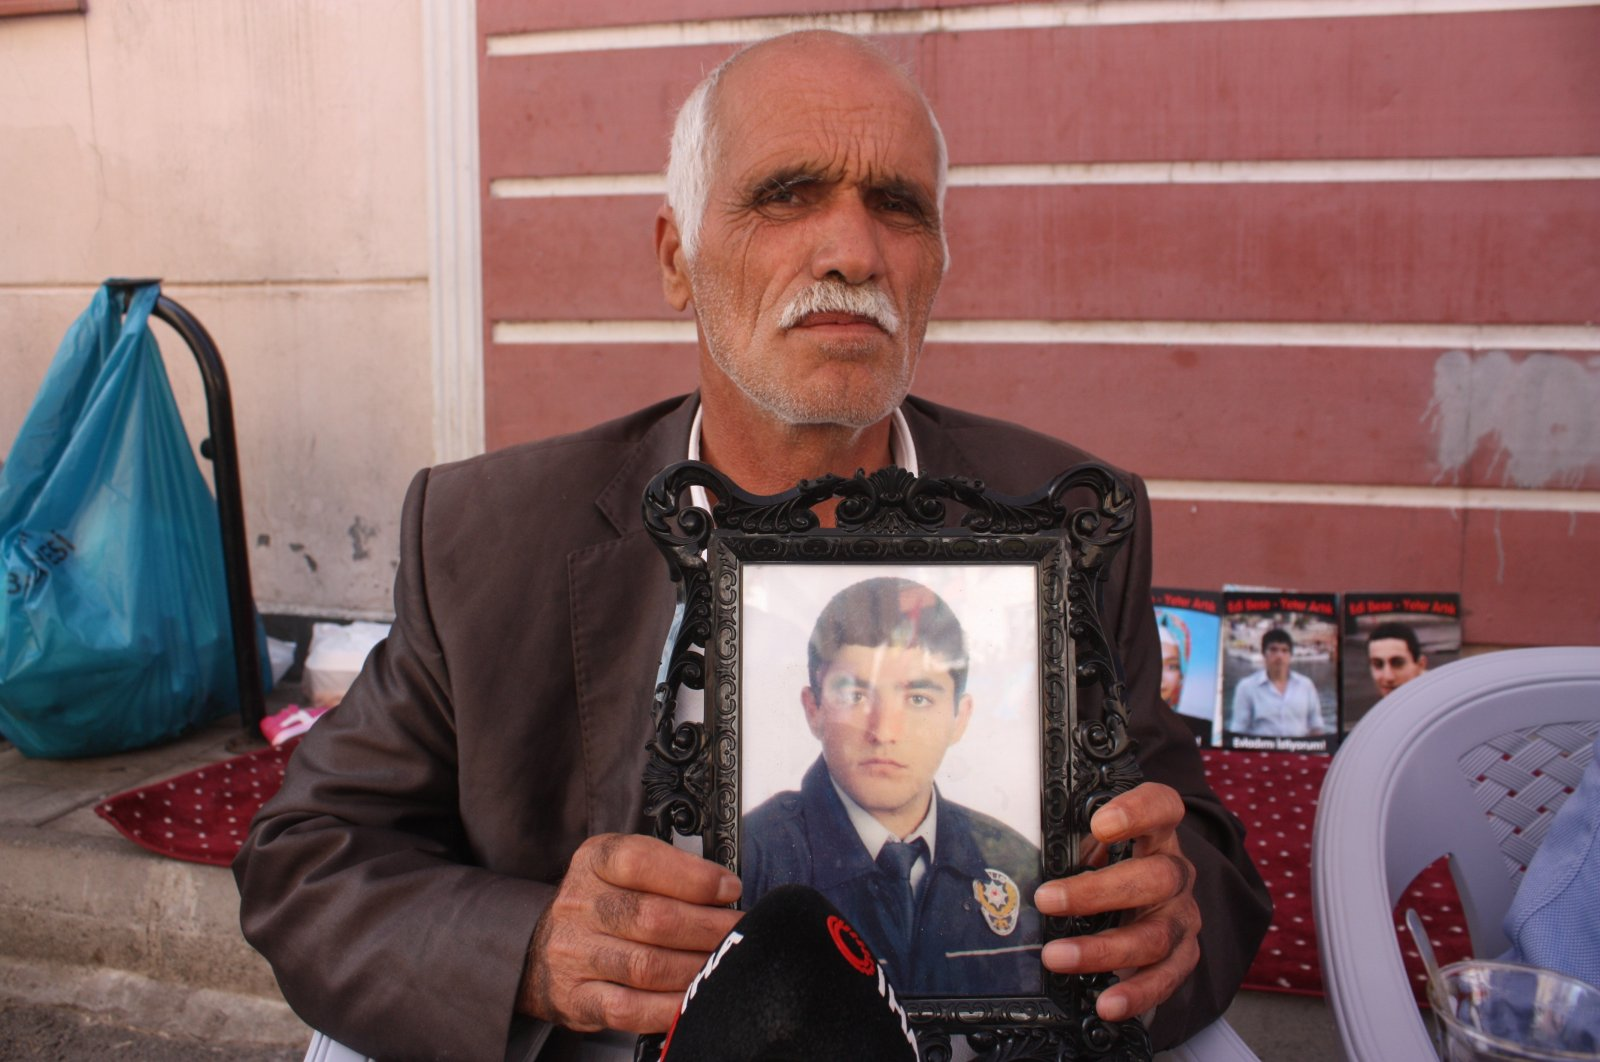 Şehmus Kaya holds a picture of his son Vedat during a sit-in protest against the PKK in southeastern Diyarbakır province, Turkey, Oct. 22, 2019. (İHA Photo)